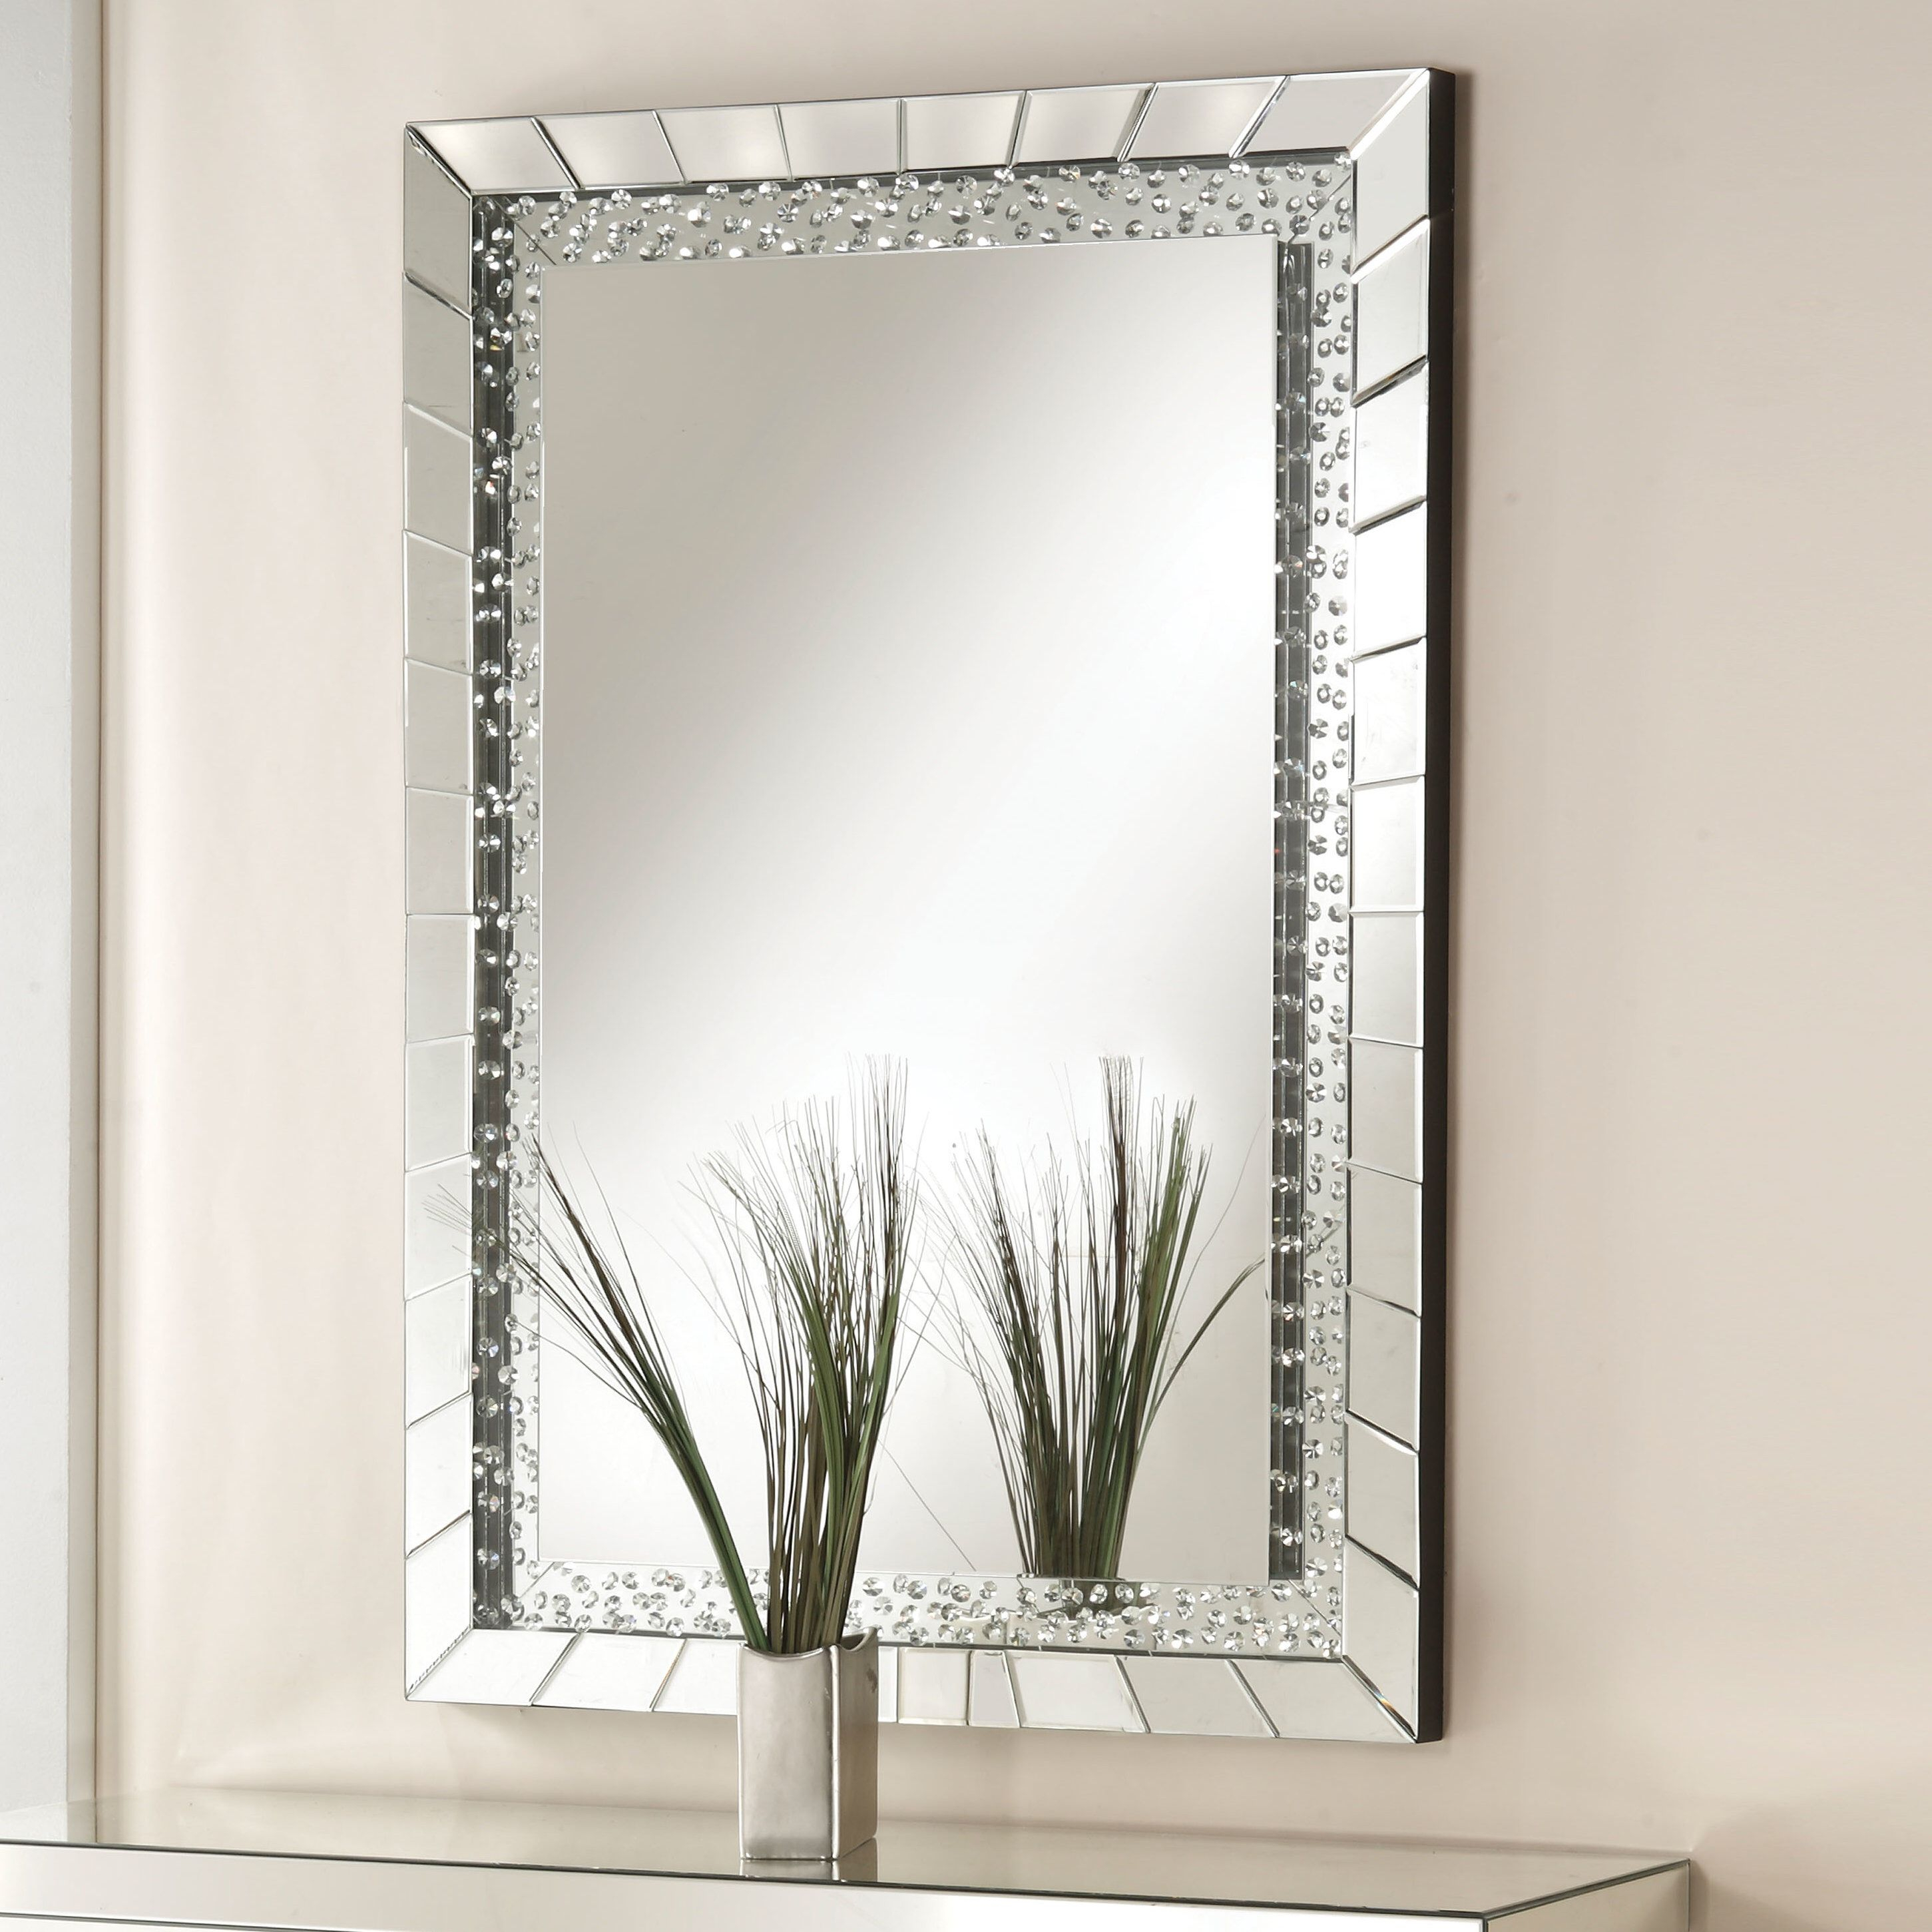 Longo Accent Mirror | Home Decor | Mirror, Decor, Accent Decor Throughout Lake Park Beveled Beaded Accent Wall Mirrors (View 14 of 30)